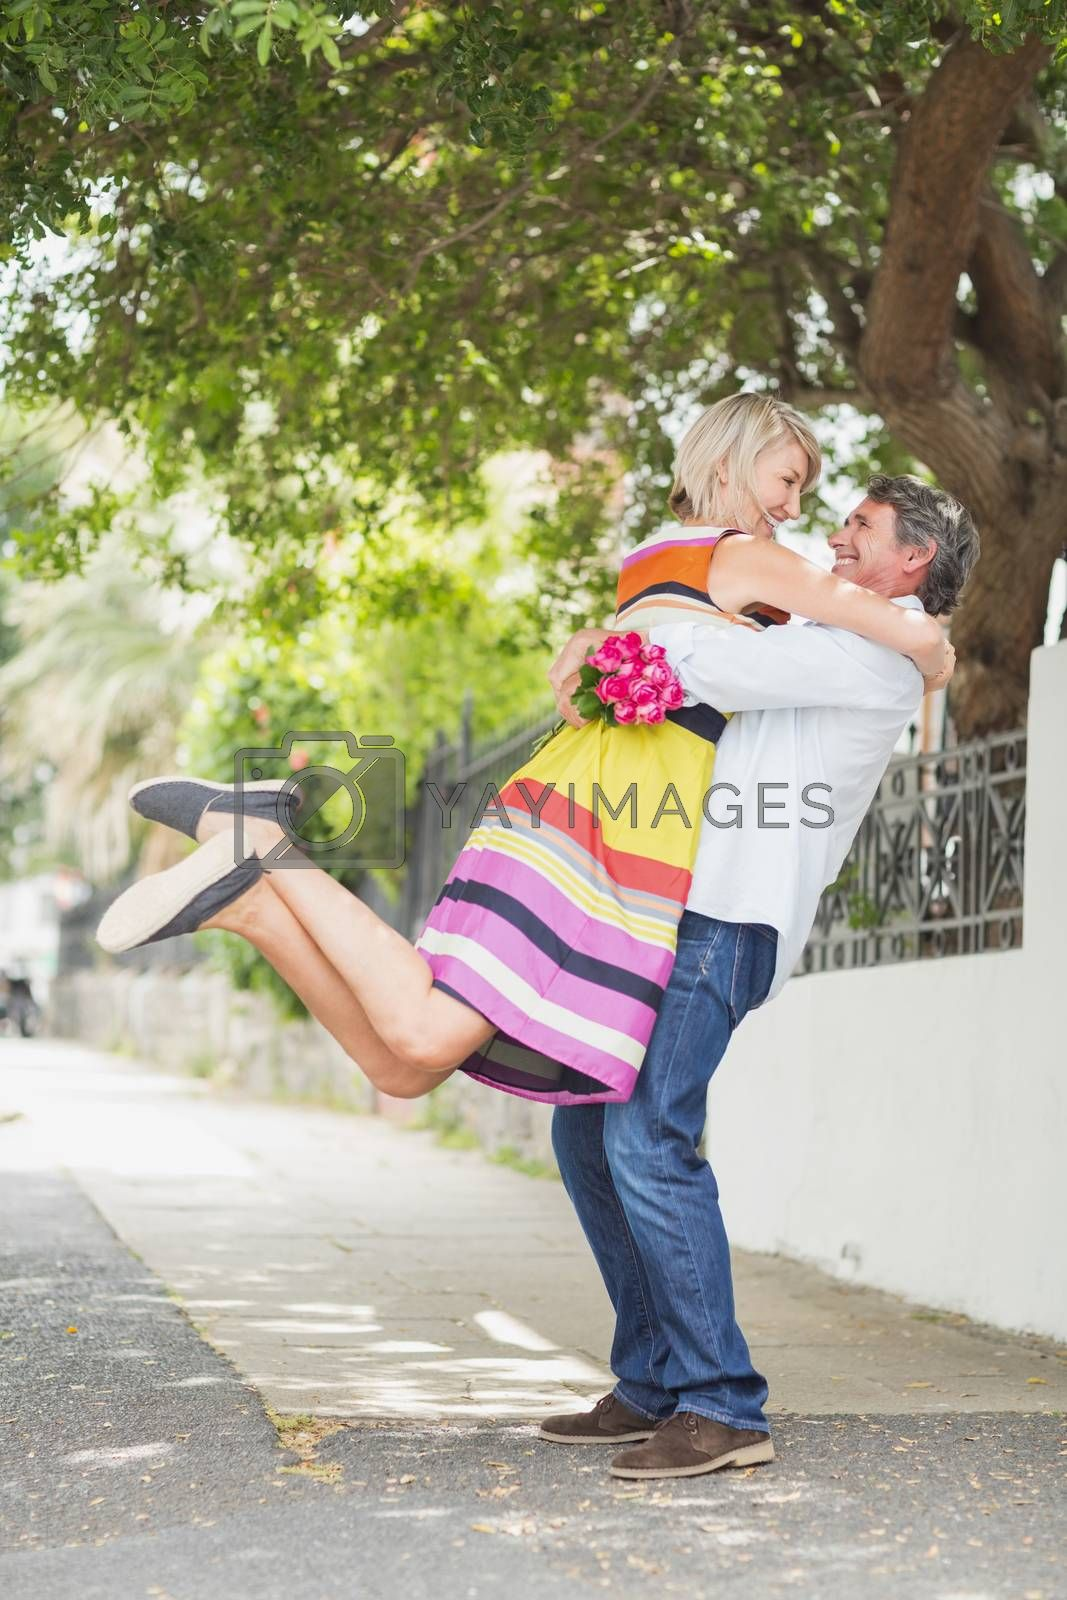 Side view of man lifting woman with flower bouquet on sidewalk in city